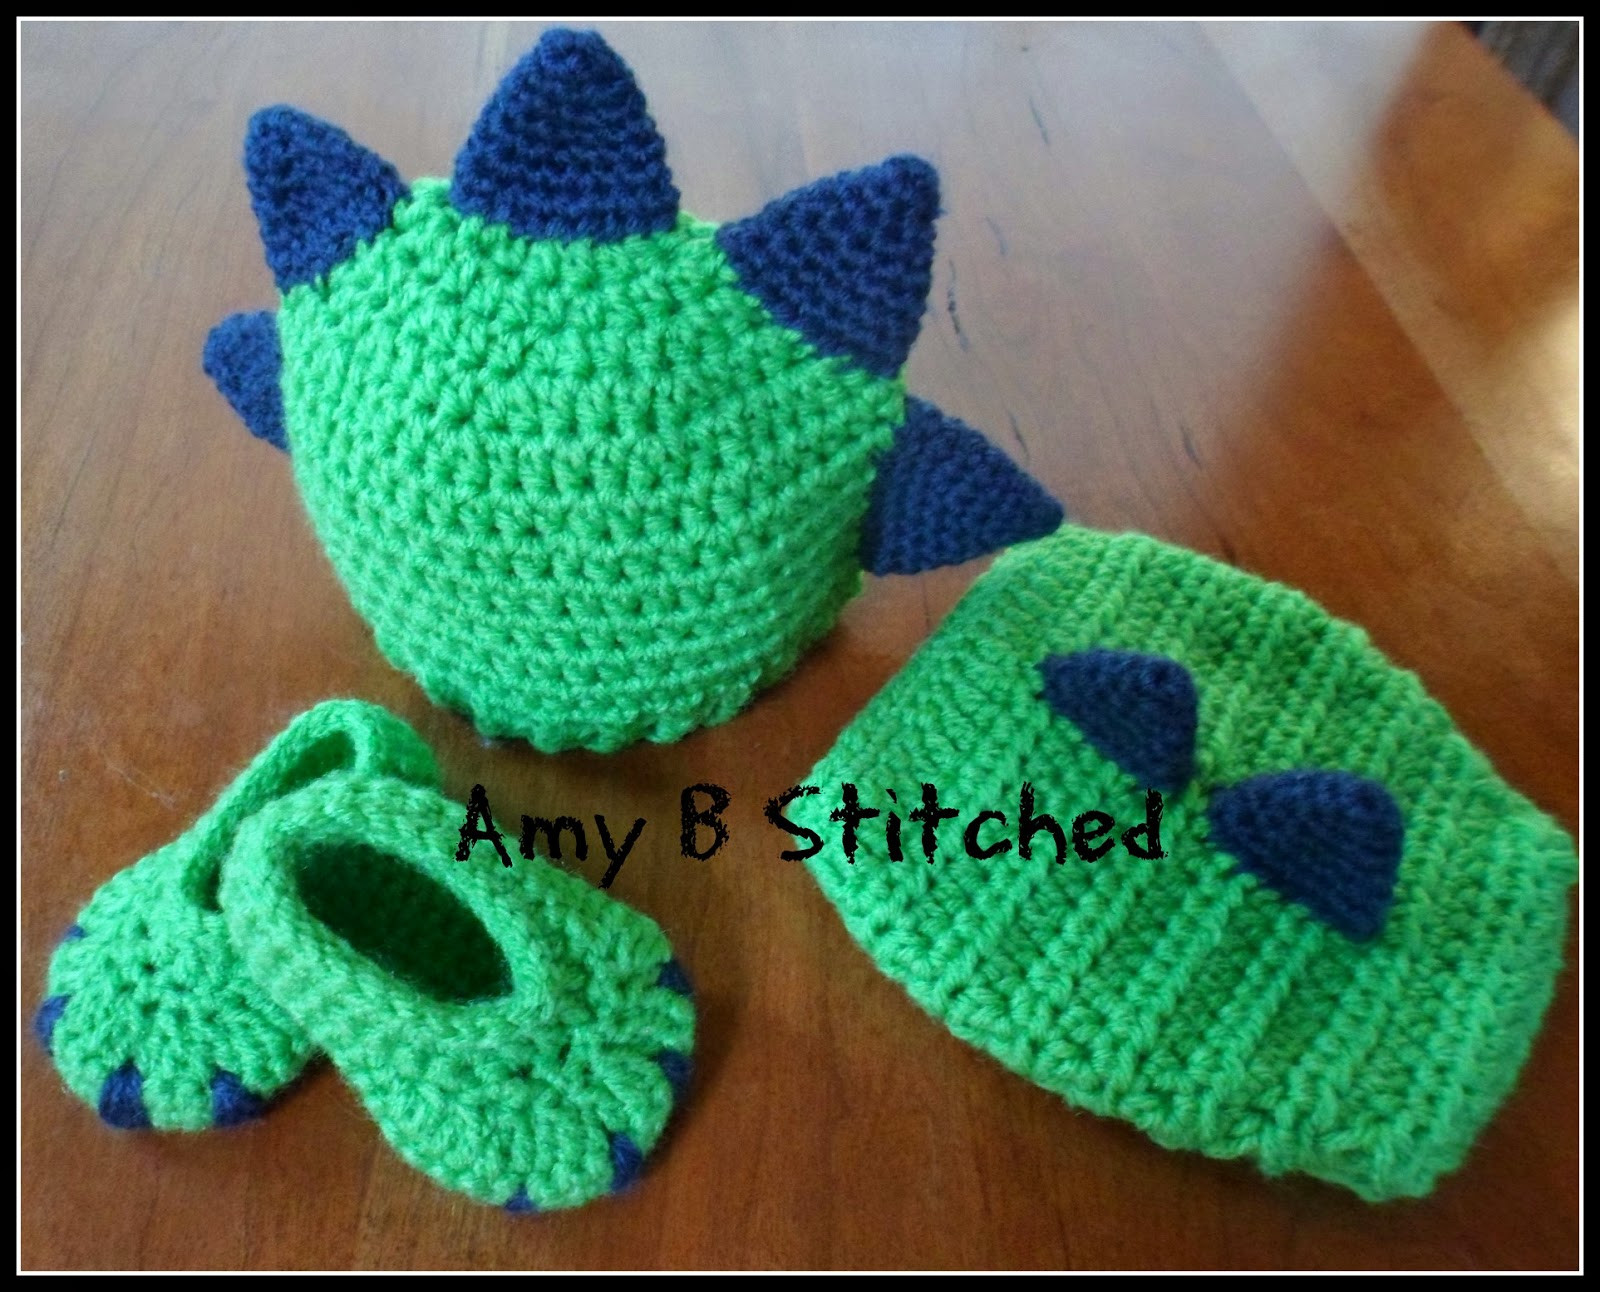 A Stitch At A Time for Amy B Stitched Newborn DINOSAUR